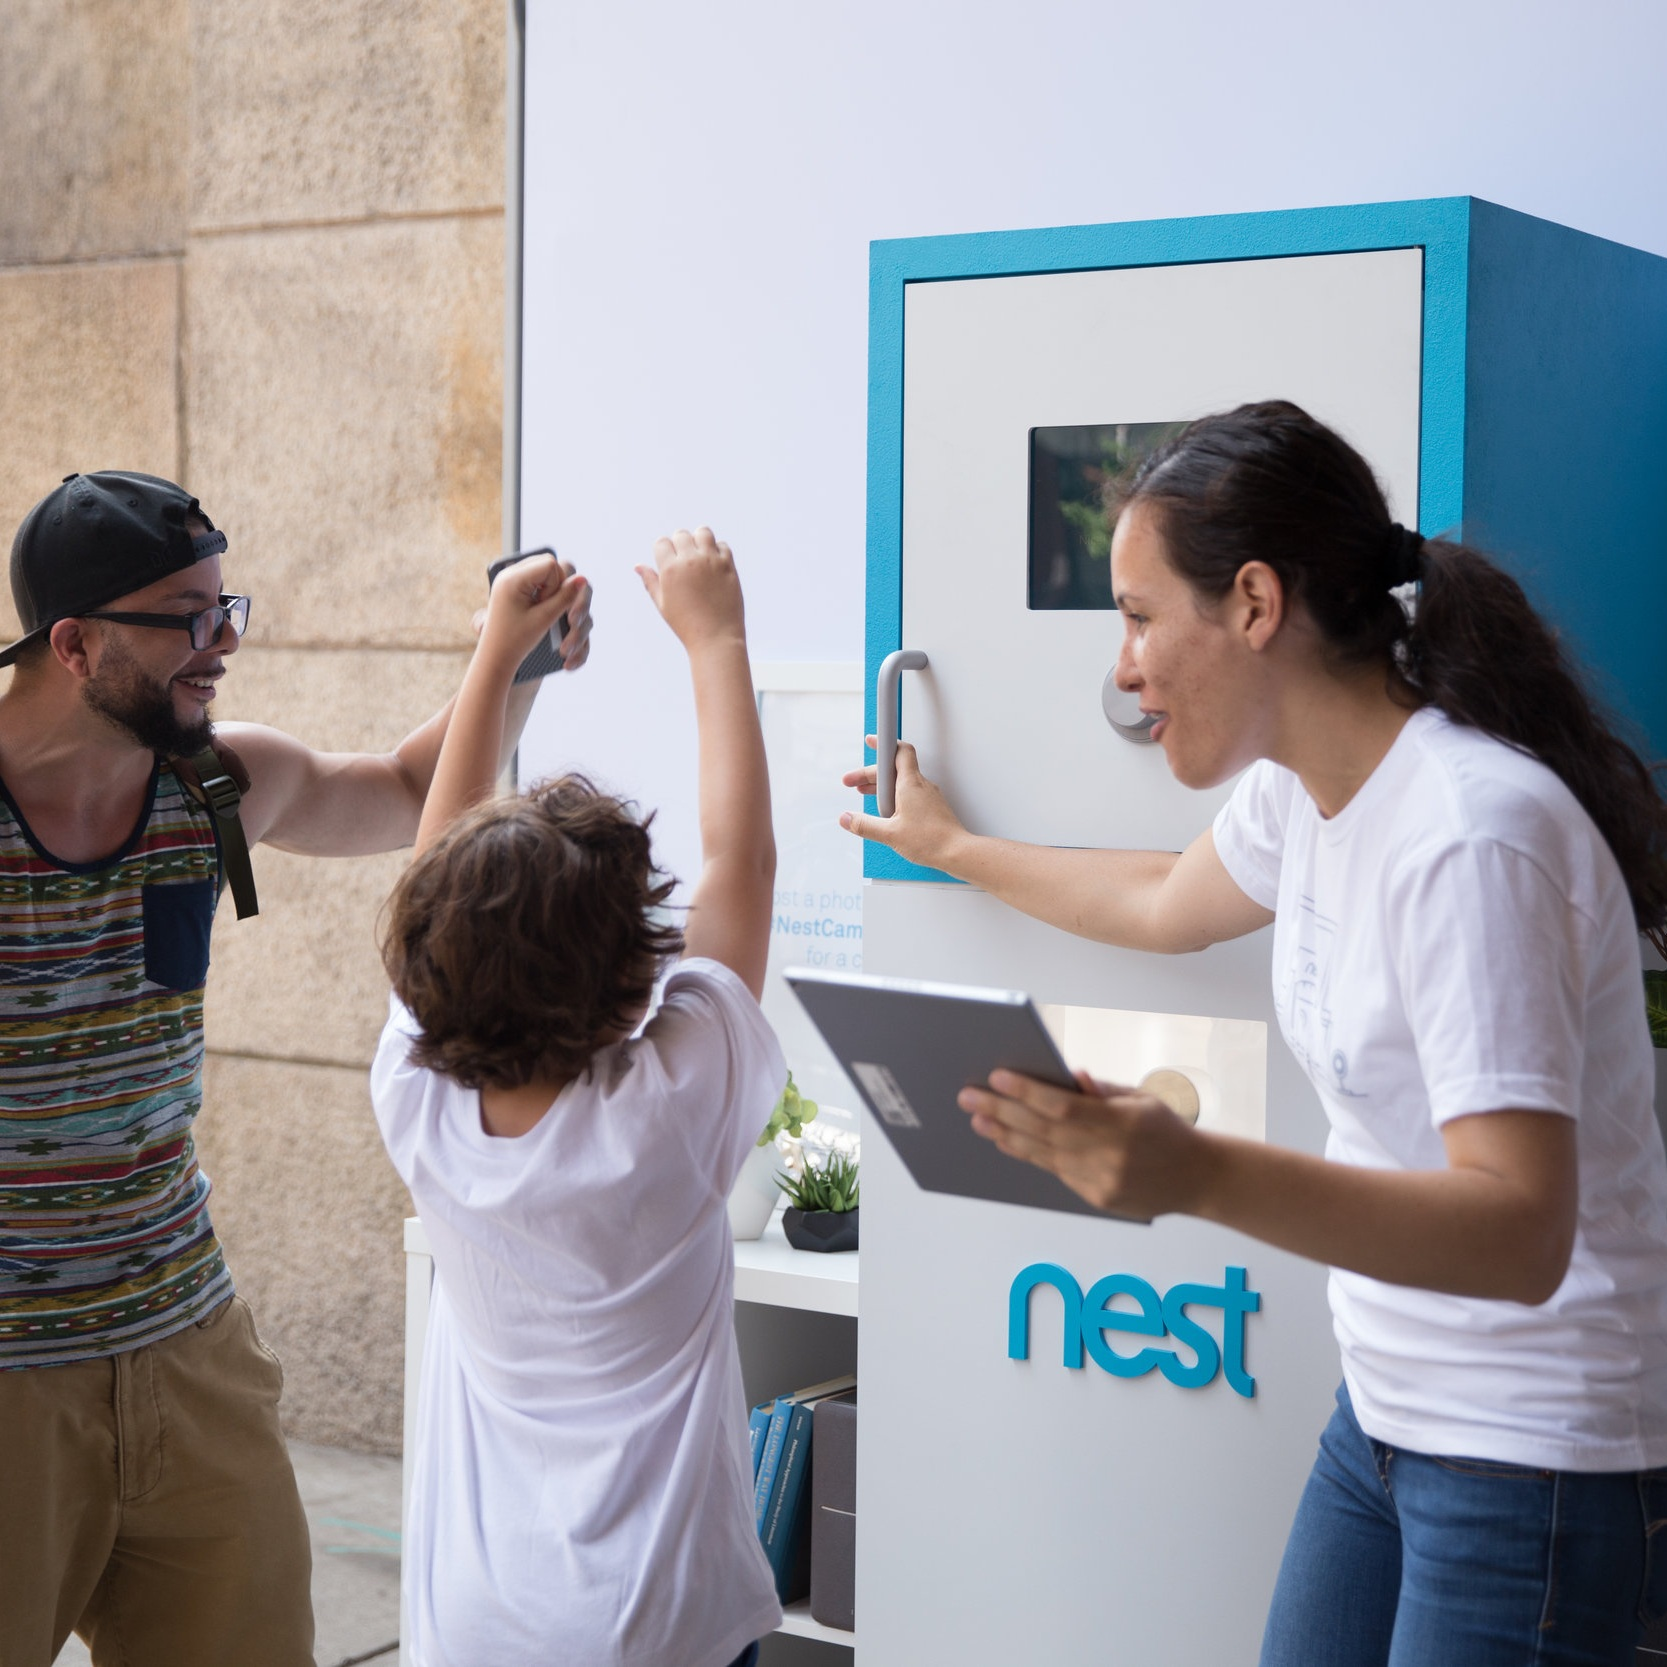 NEST HEIST - A Nest Cam IQ safe tests your IQ against the product by timing your ability to crack the code.